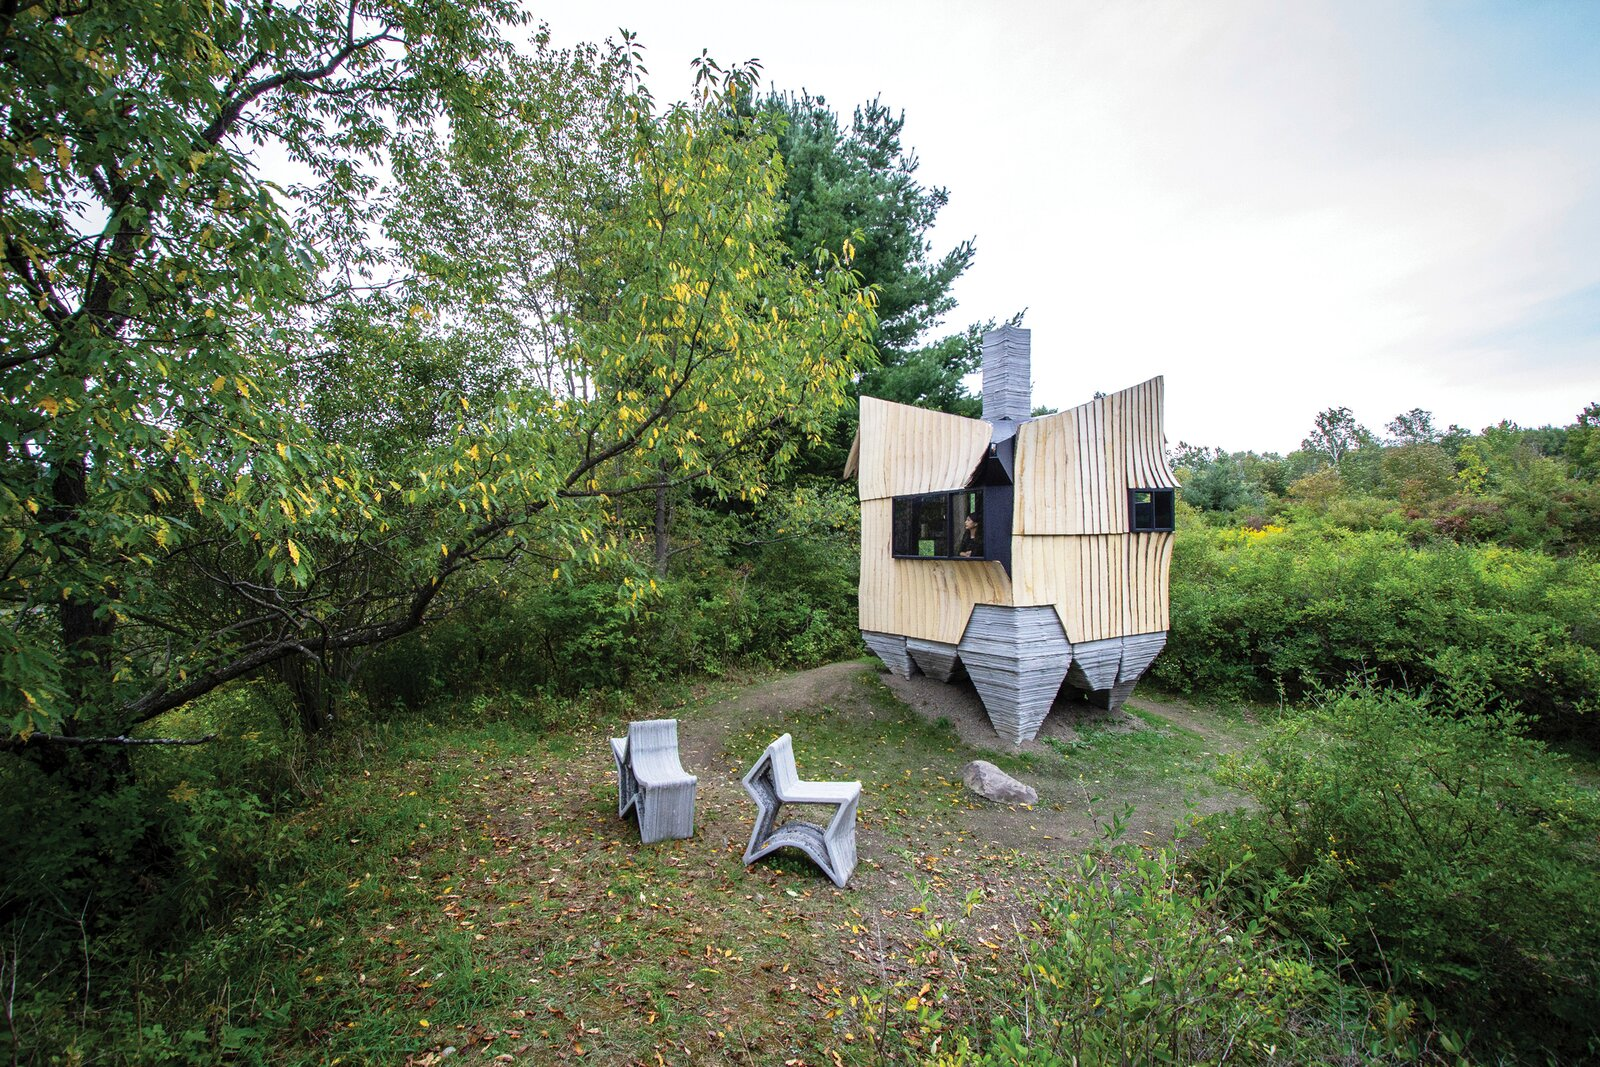 HANNAH utilizes salvaged materials, 3D printing, and robotic technology to create an otherworldly cabin in upstate New York.